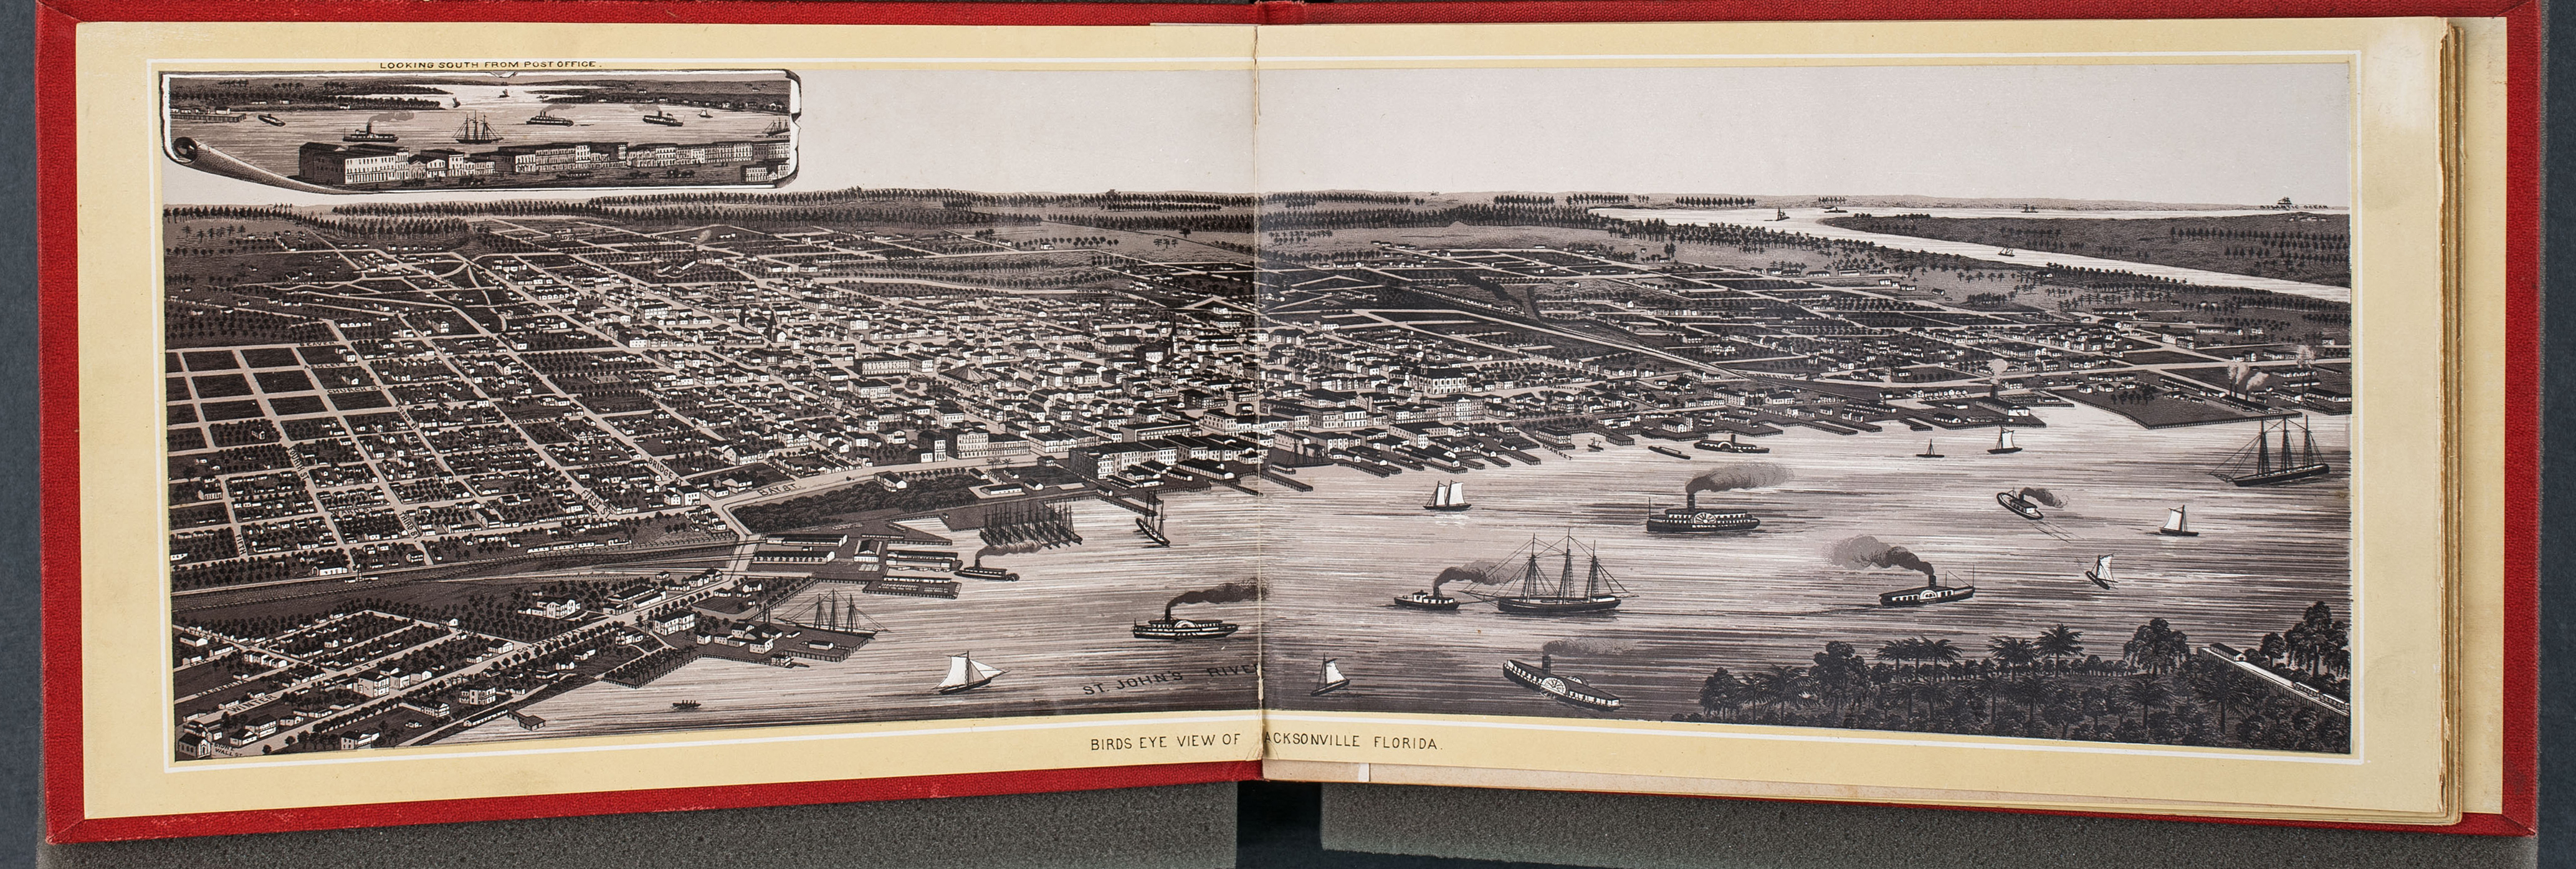 A book open to a page depicting a historic, aerial view of Jacksonville, Florida.